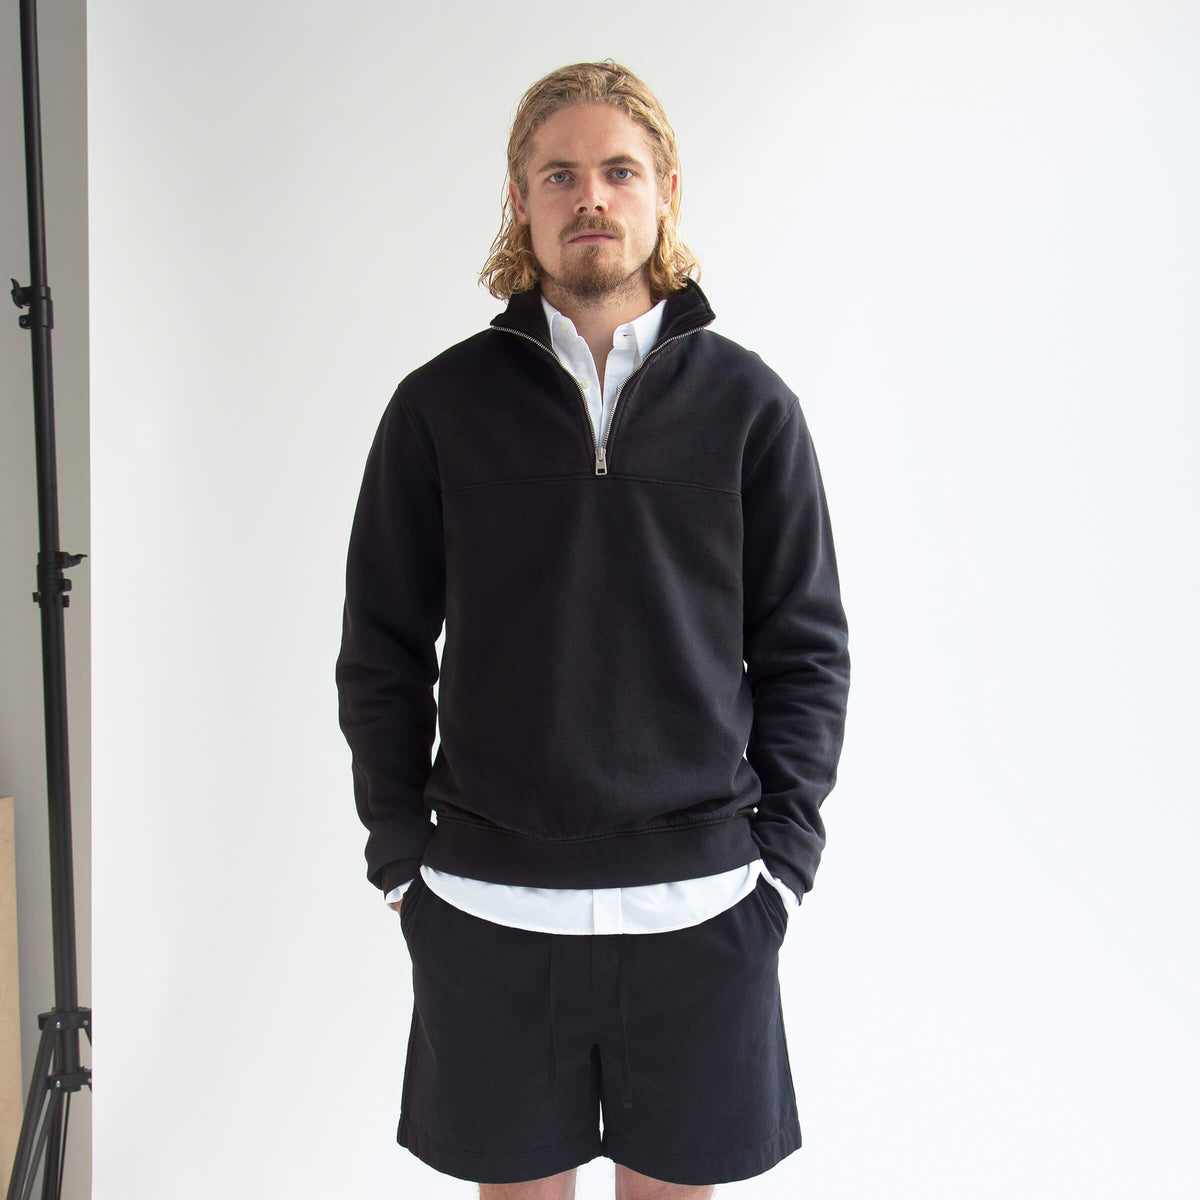 Half-Zip Sweater Dusty Black - Unrecorded